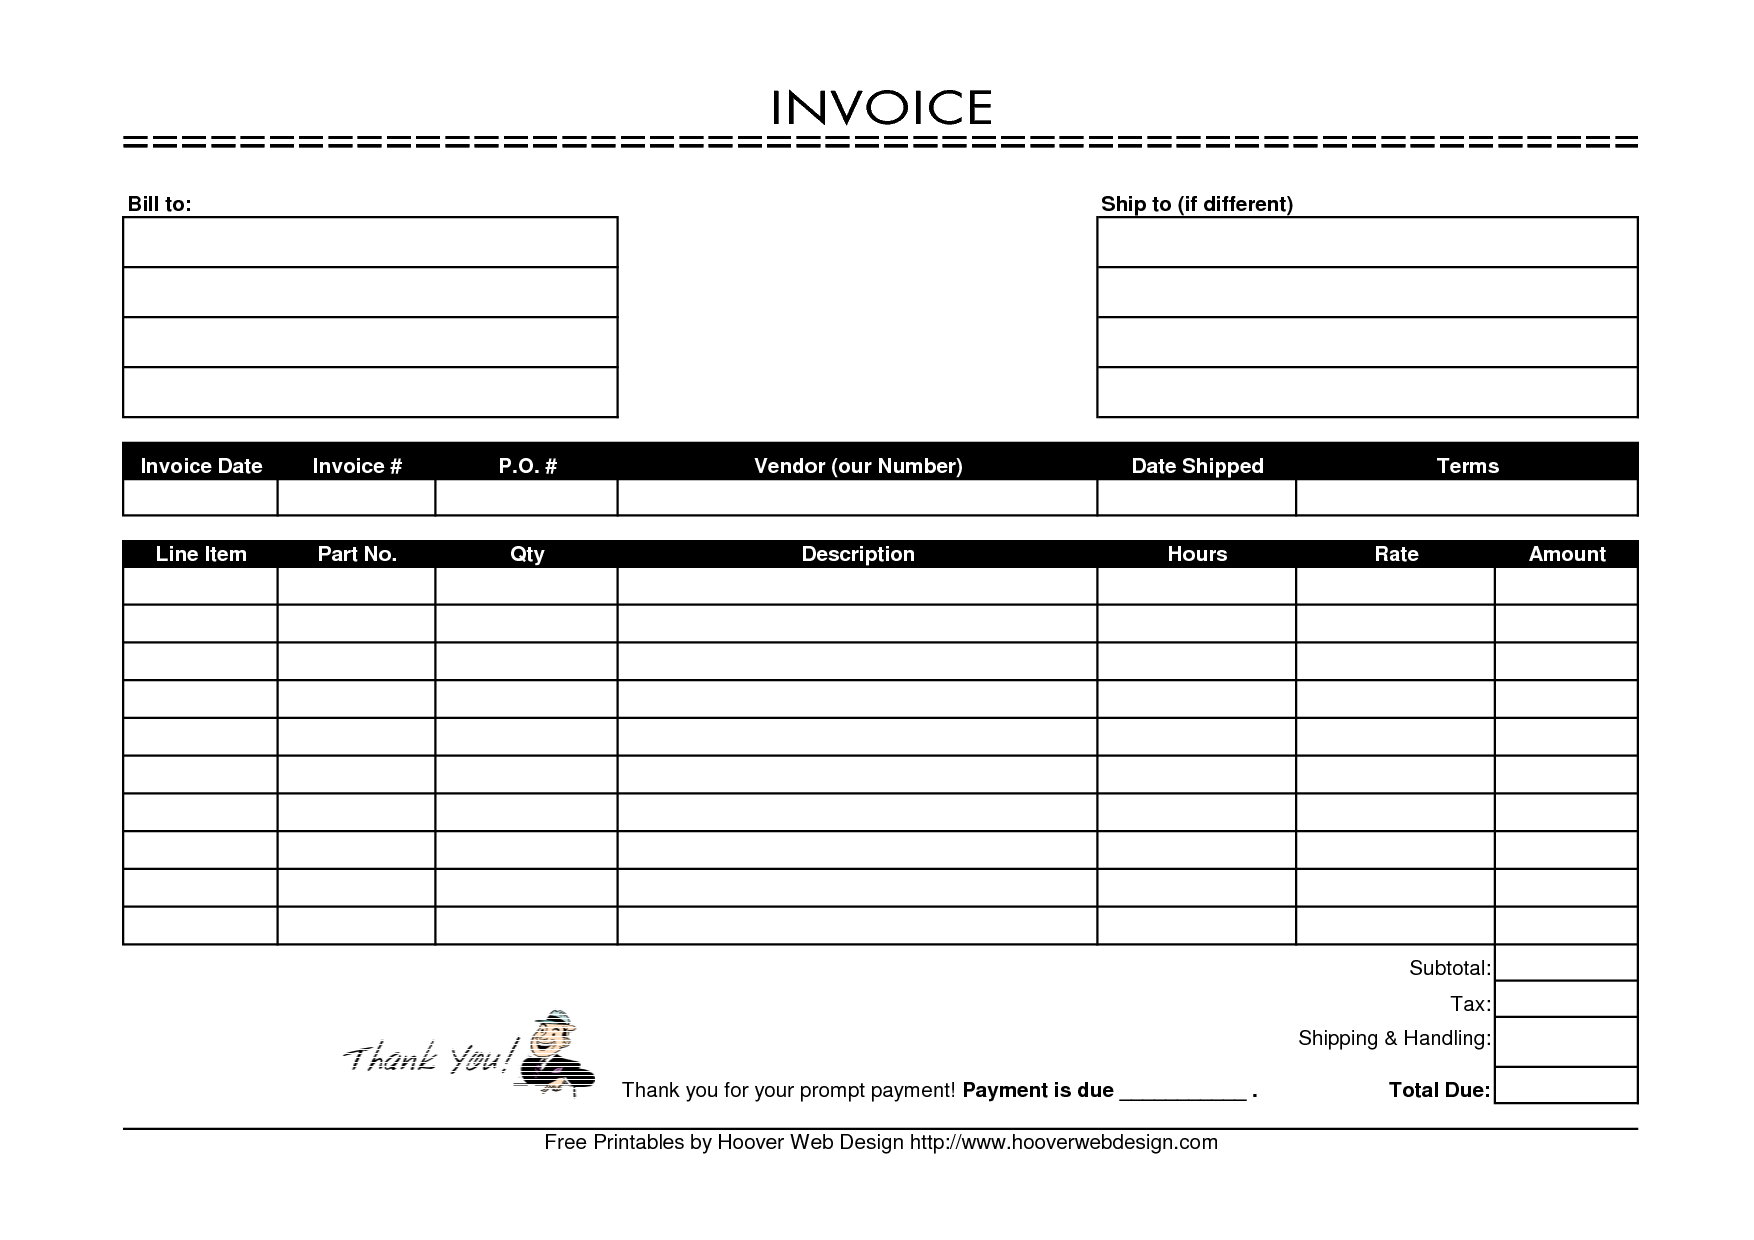 Quickbooks Online Invoice Templates and Free Printable Invoice Free to Do List